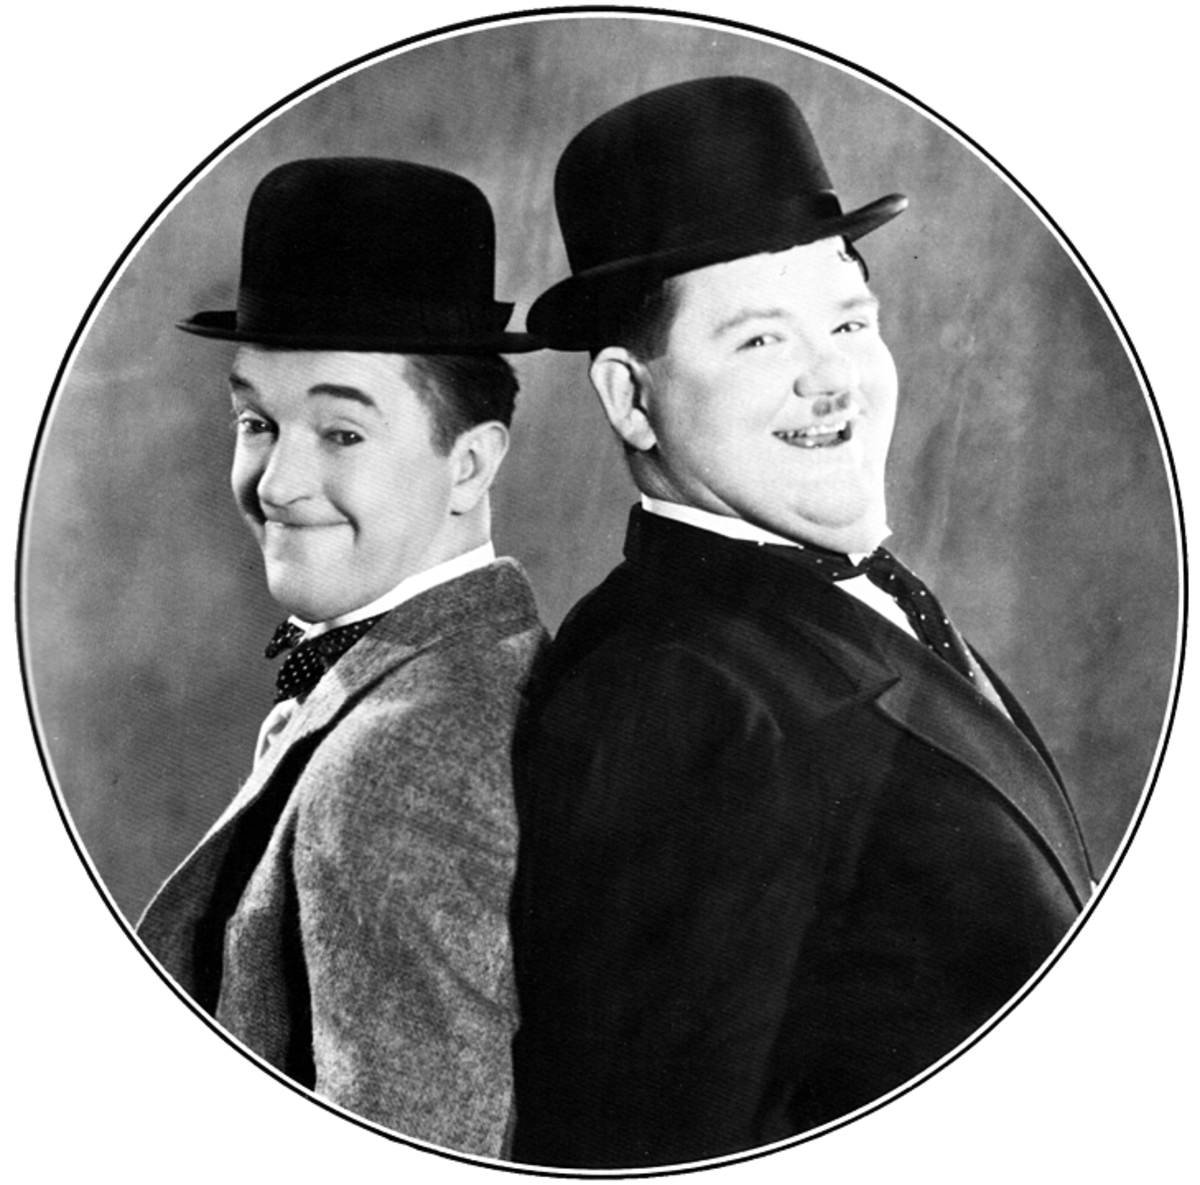 Whatever Happened to Laurel & Hardy?